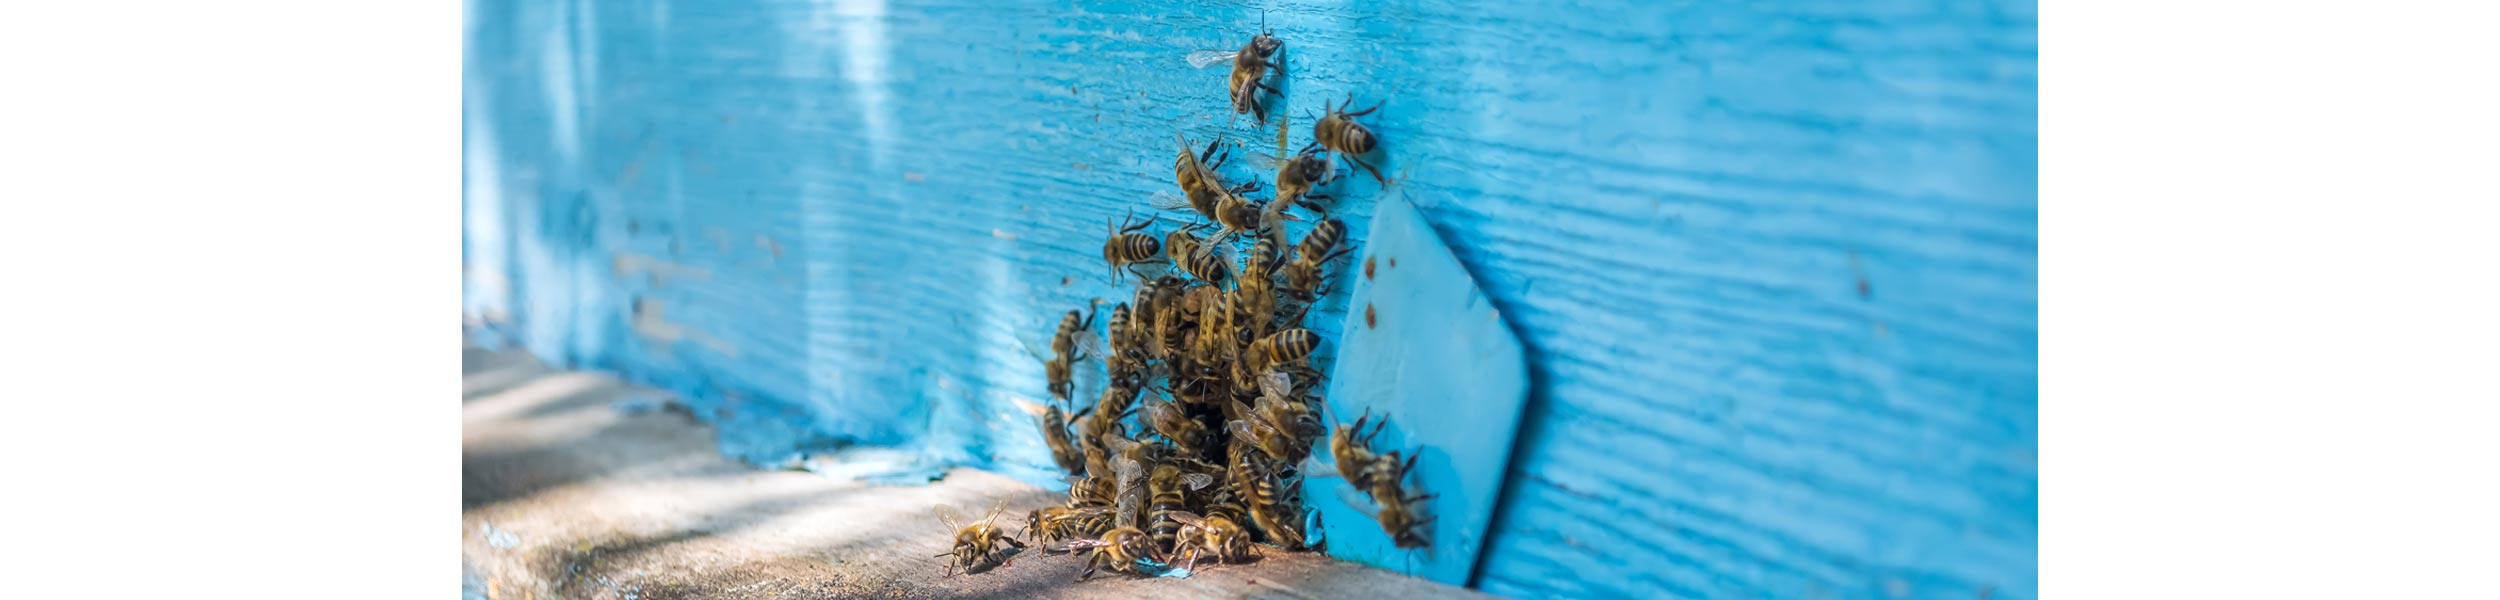 OPC-Pest-Services-Bees-Swarm-Hole-Header